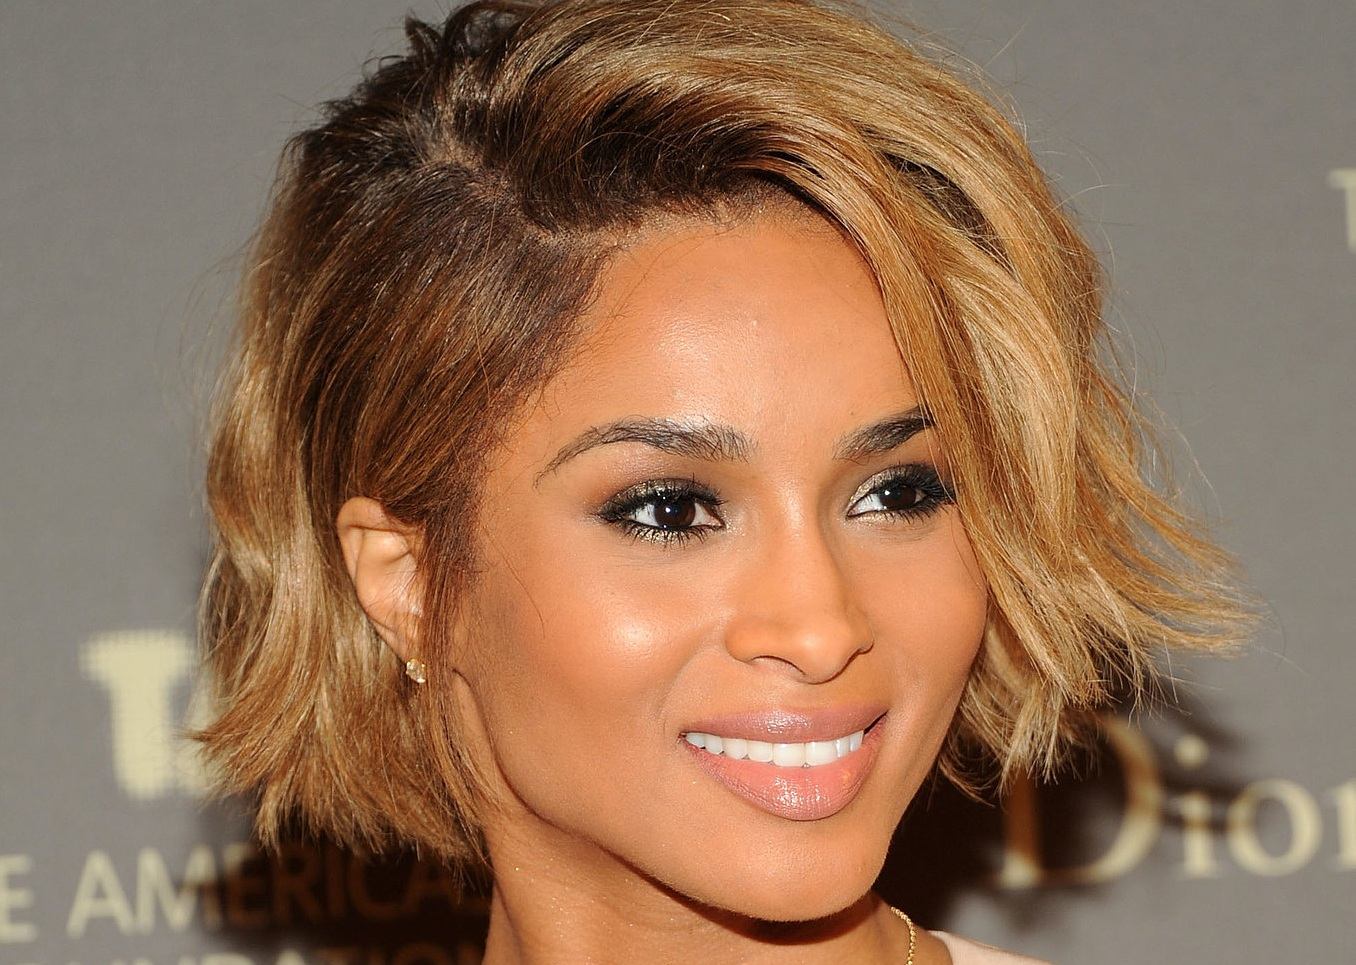 Stupendous 12 Must See Ombre Hair Color Shades Amp Hairstyles Hairstylo Short Hairstyles For Black Women Fulllsitofus